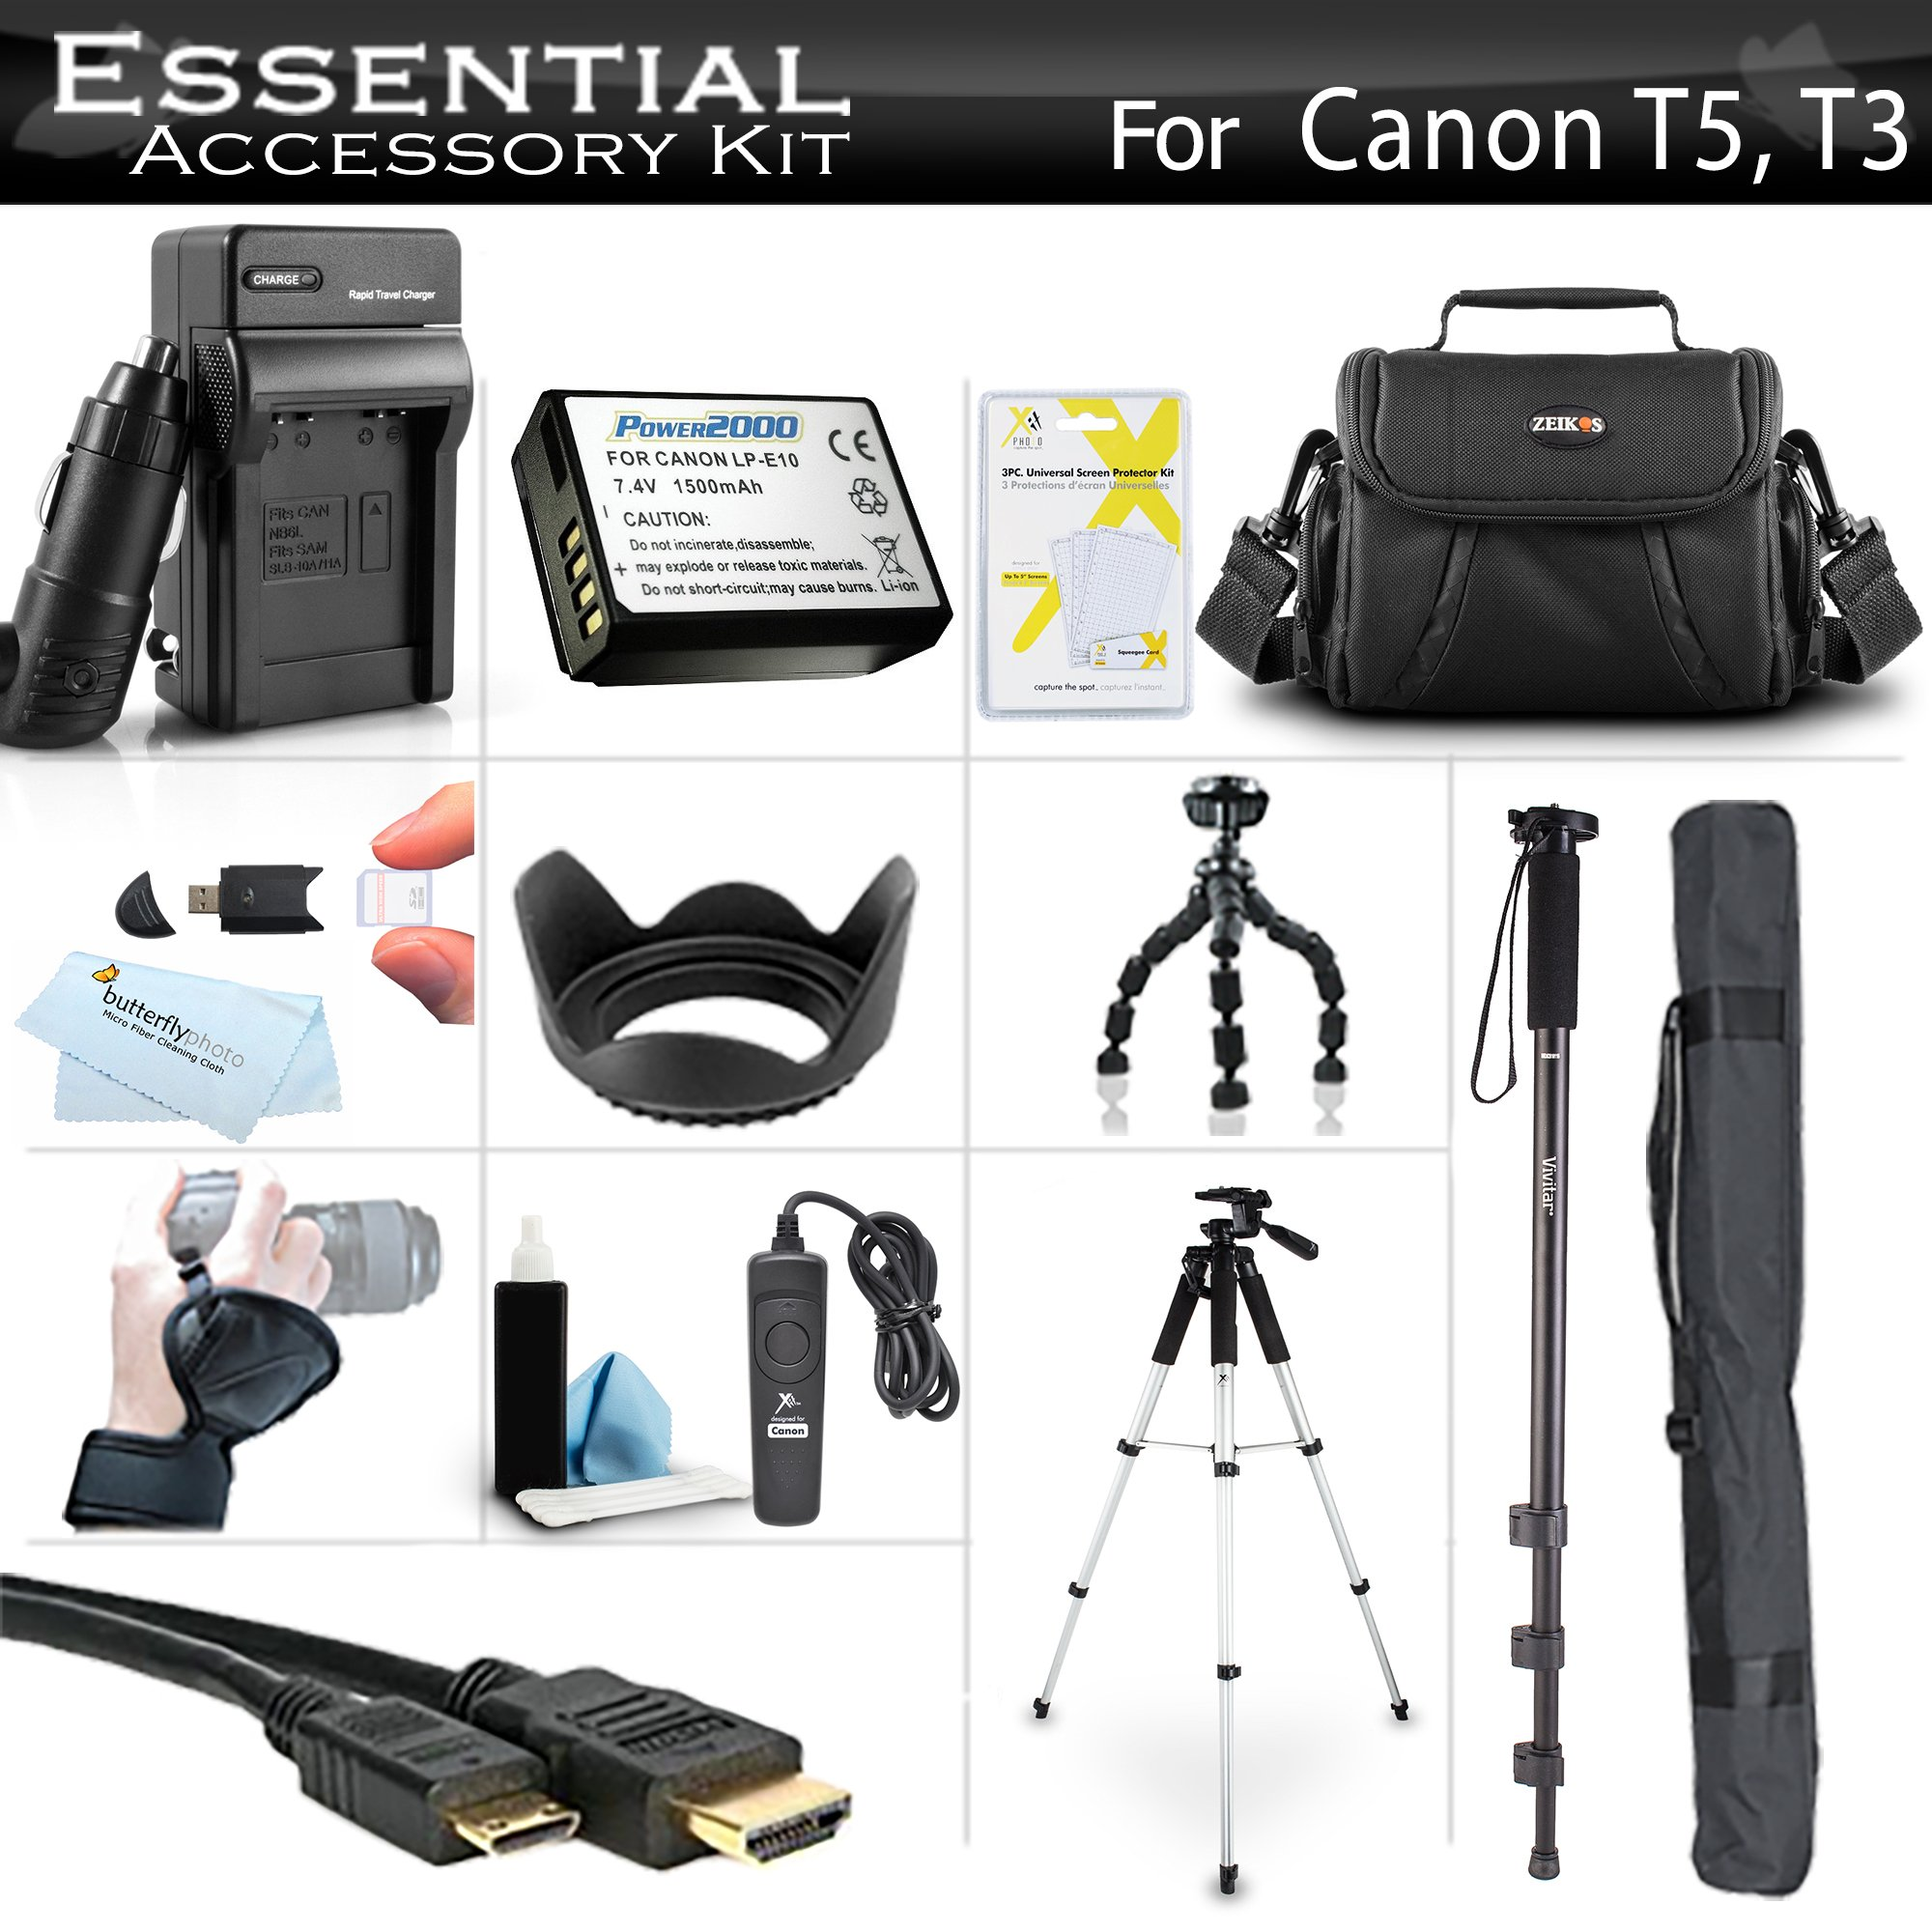 Essential Accessory Kit For Canon EOS Rebel T5, T3, T6 Digital SLR Camera Includes Replacement LP-E10 Battery + AC/DC Charger + Case + Remote Switch + 57 Tripod + 10 Flexible Tripod + Monopod + More